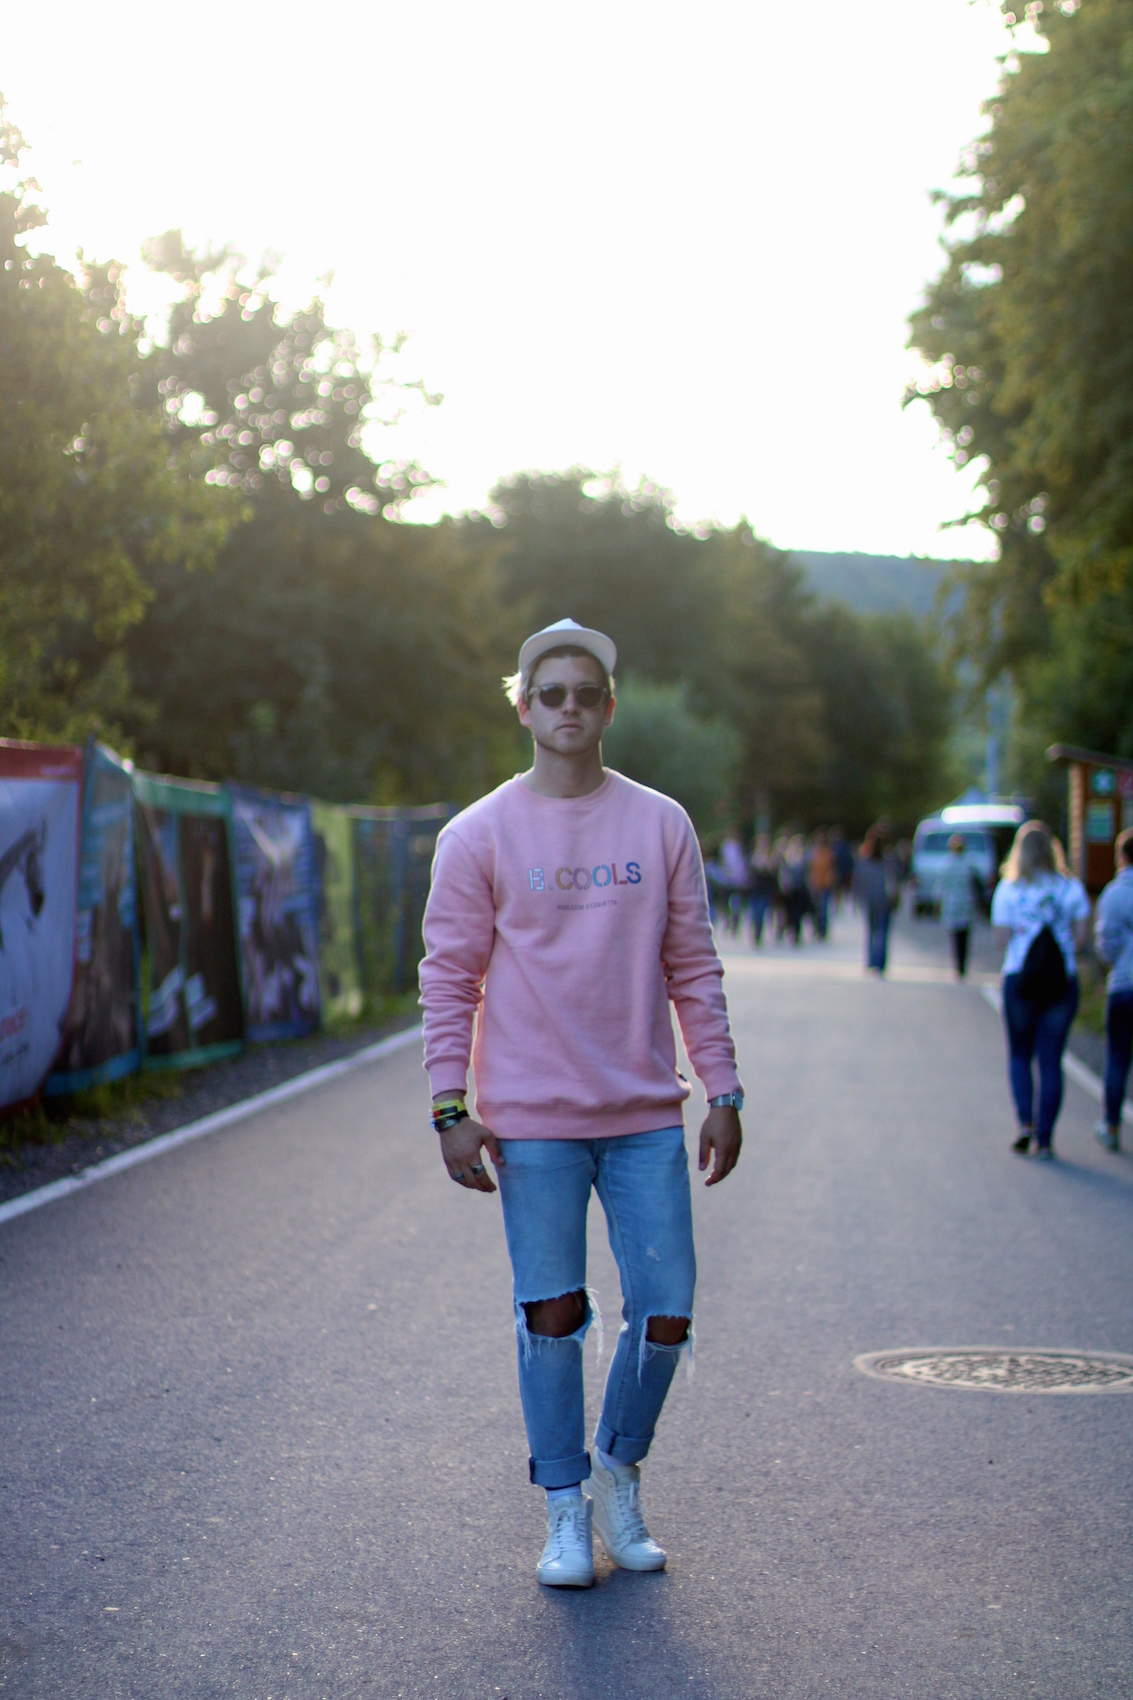 Summerville Festival Wiesen with Jack Daniels Meanwhile in Awesometown Austrian Mens Fashion and Lifestyleblogger Wien Vienna Festival Style9